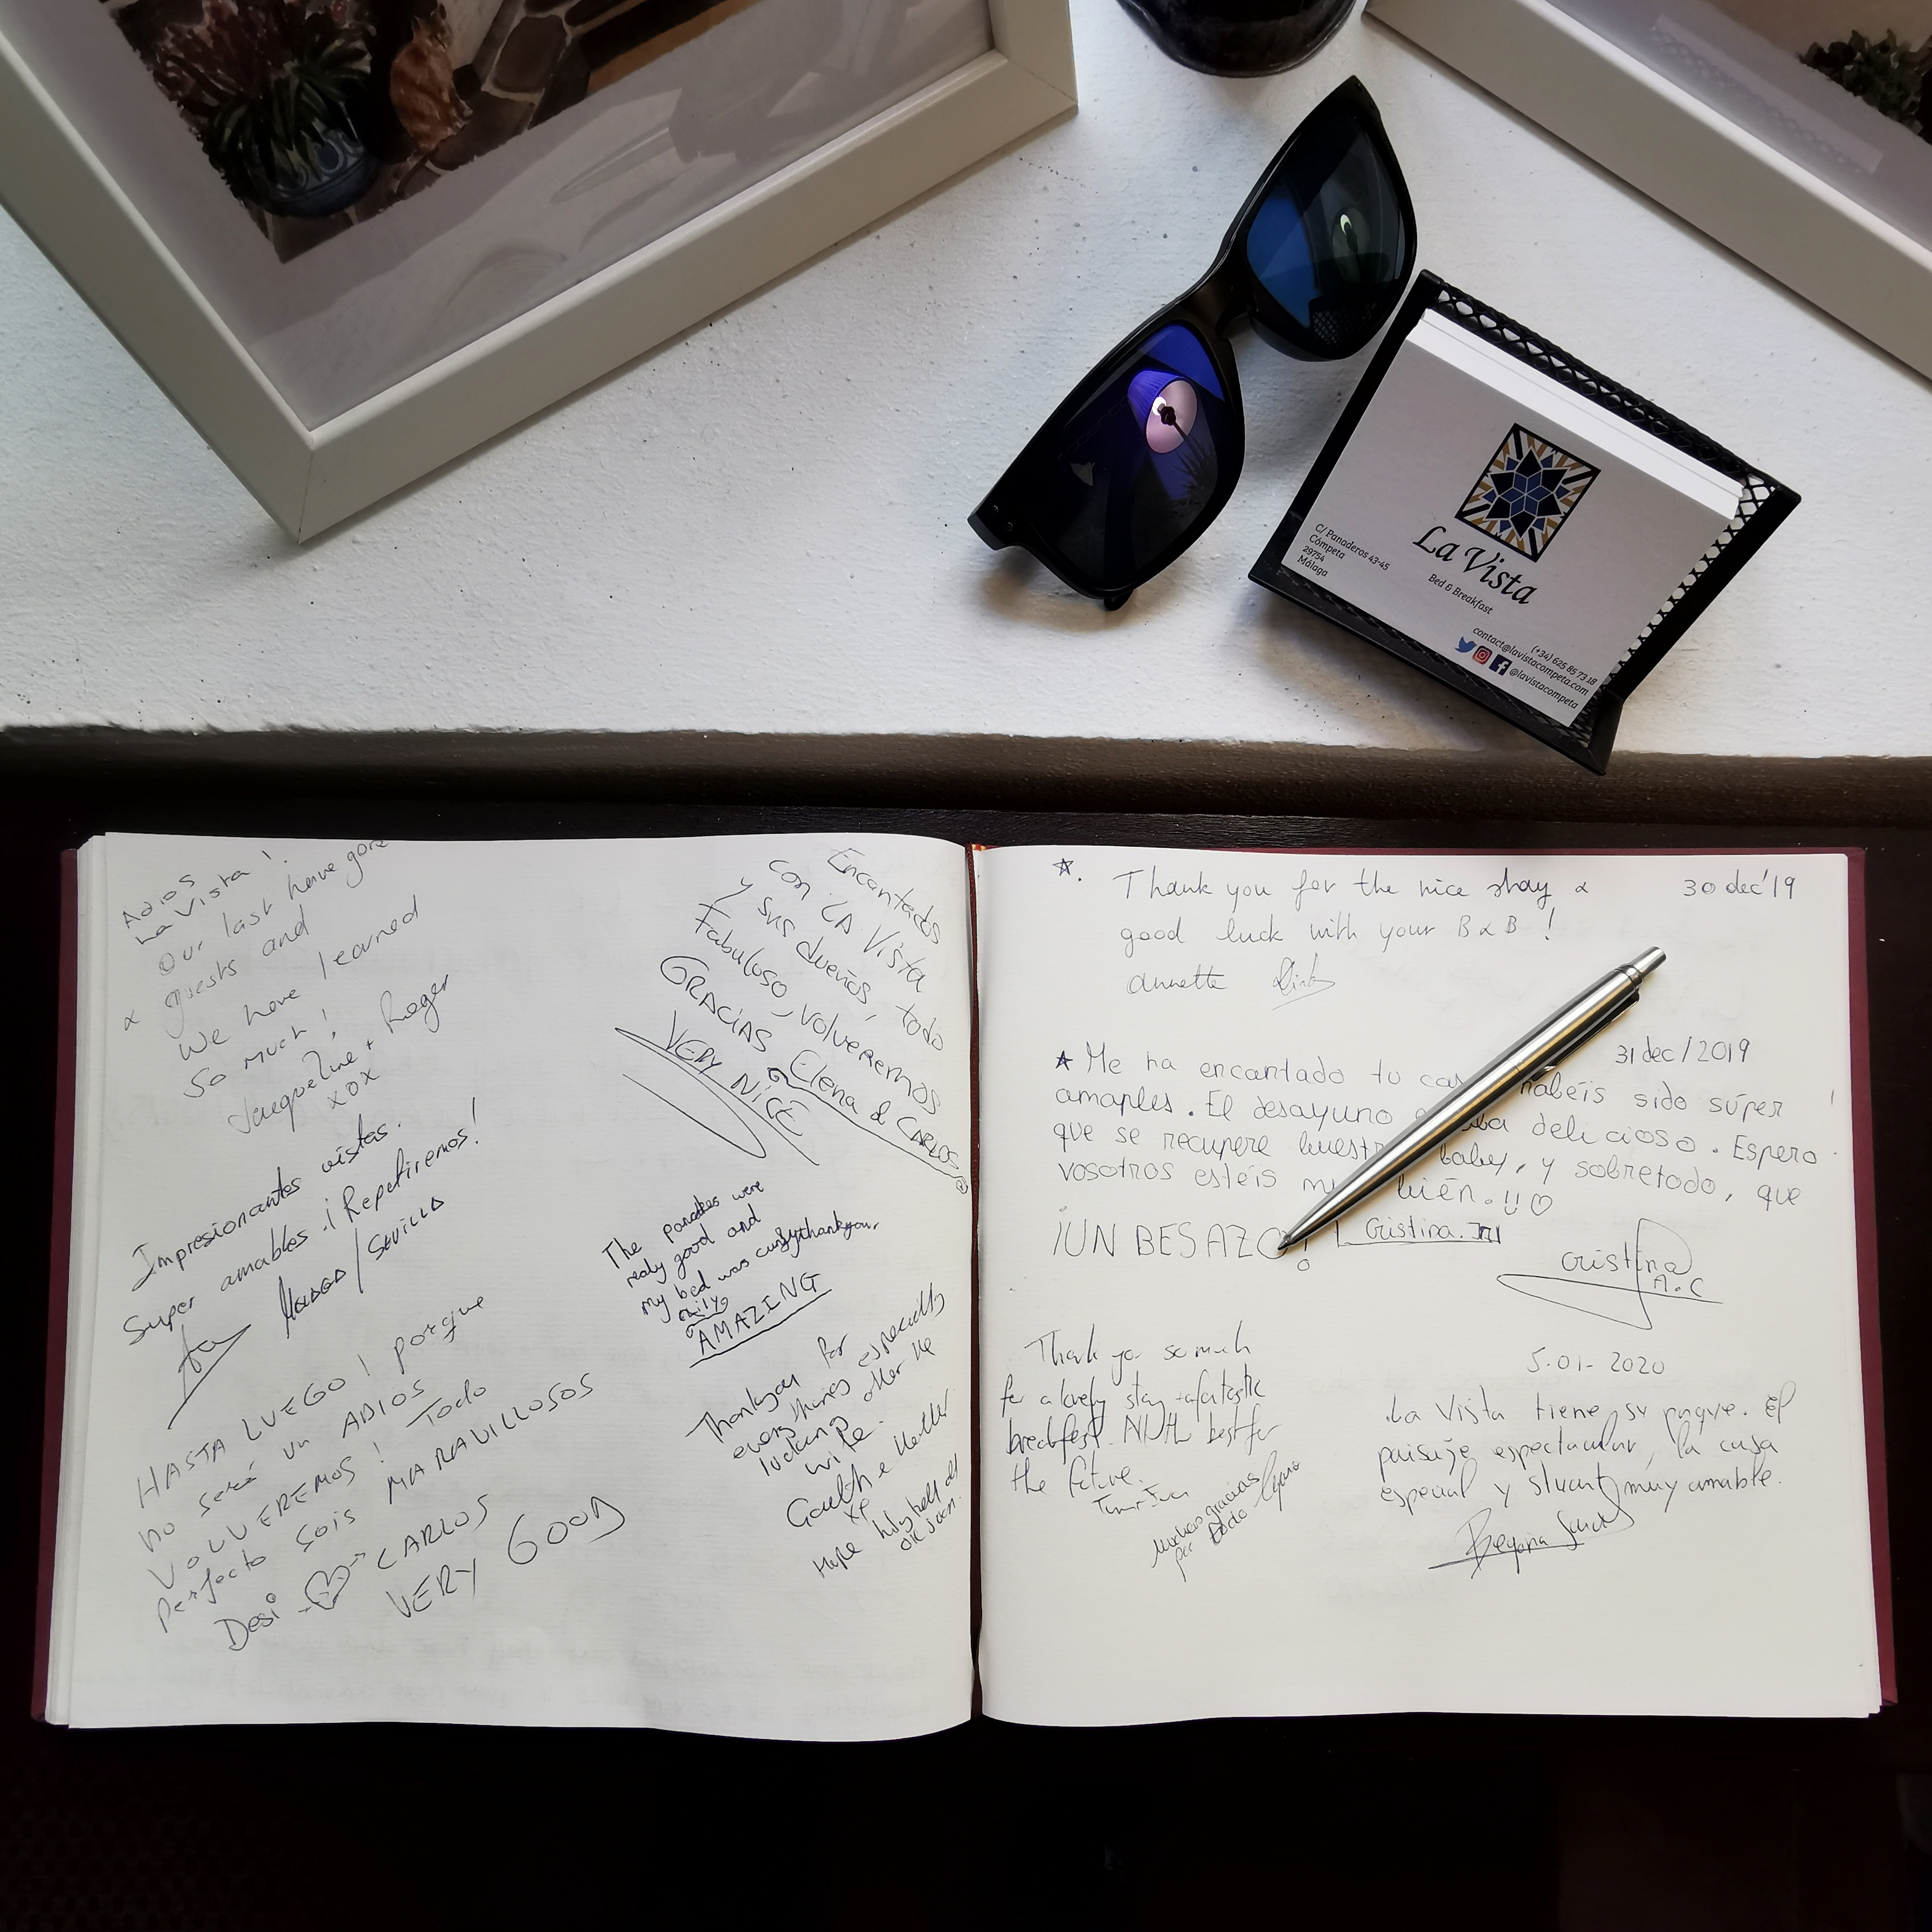 Our guest book